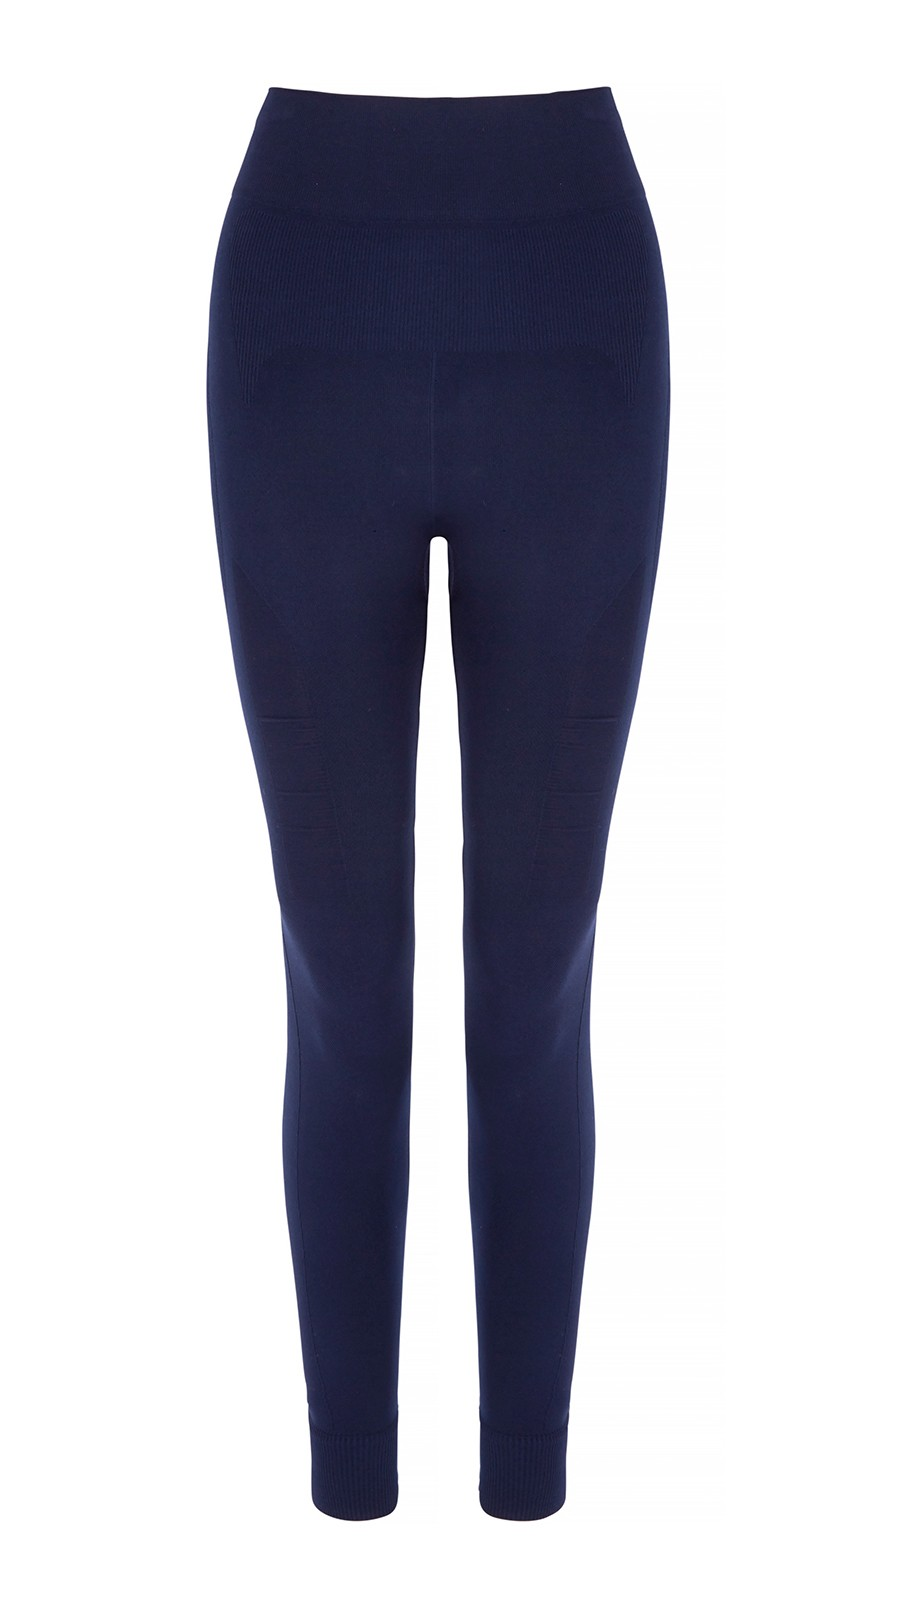 Navy Leggings: What To Pair Them With – careyfashion.com